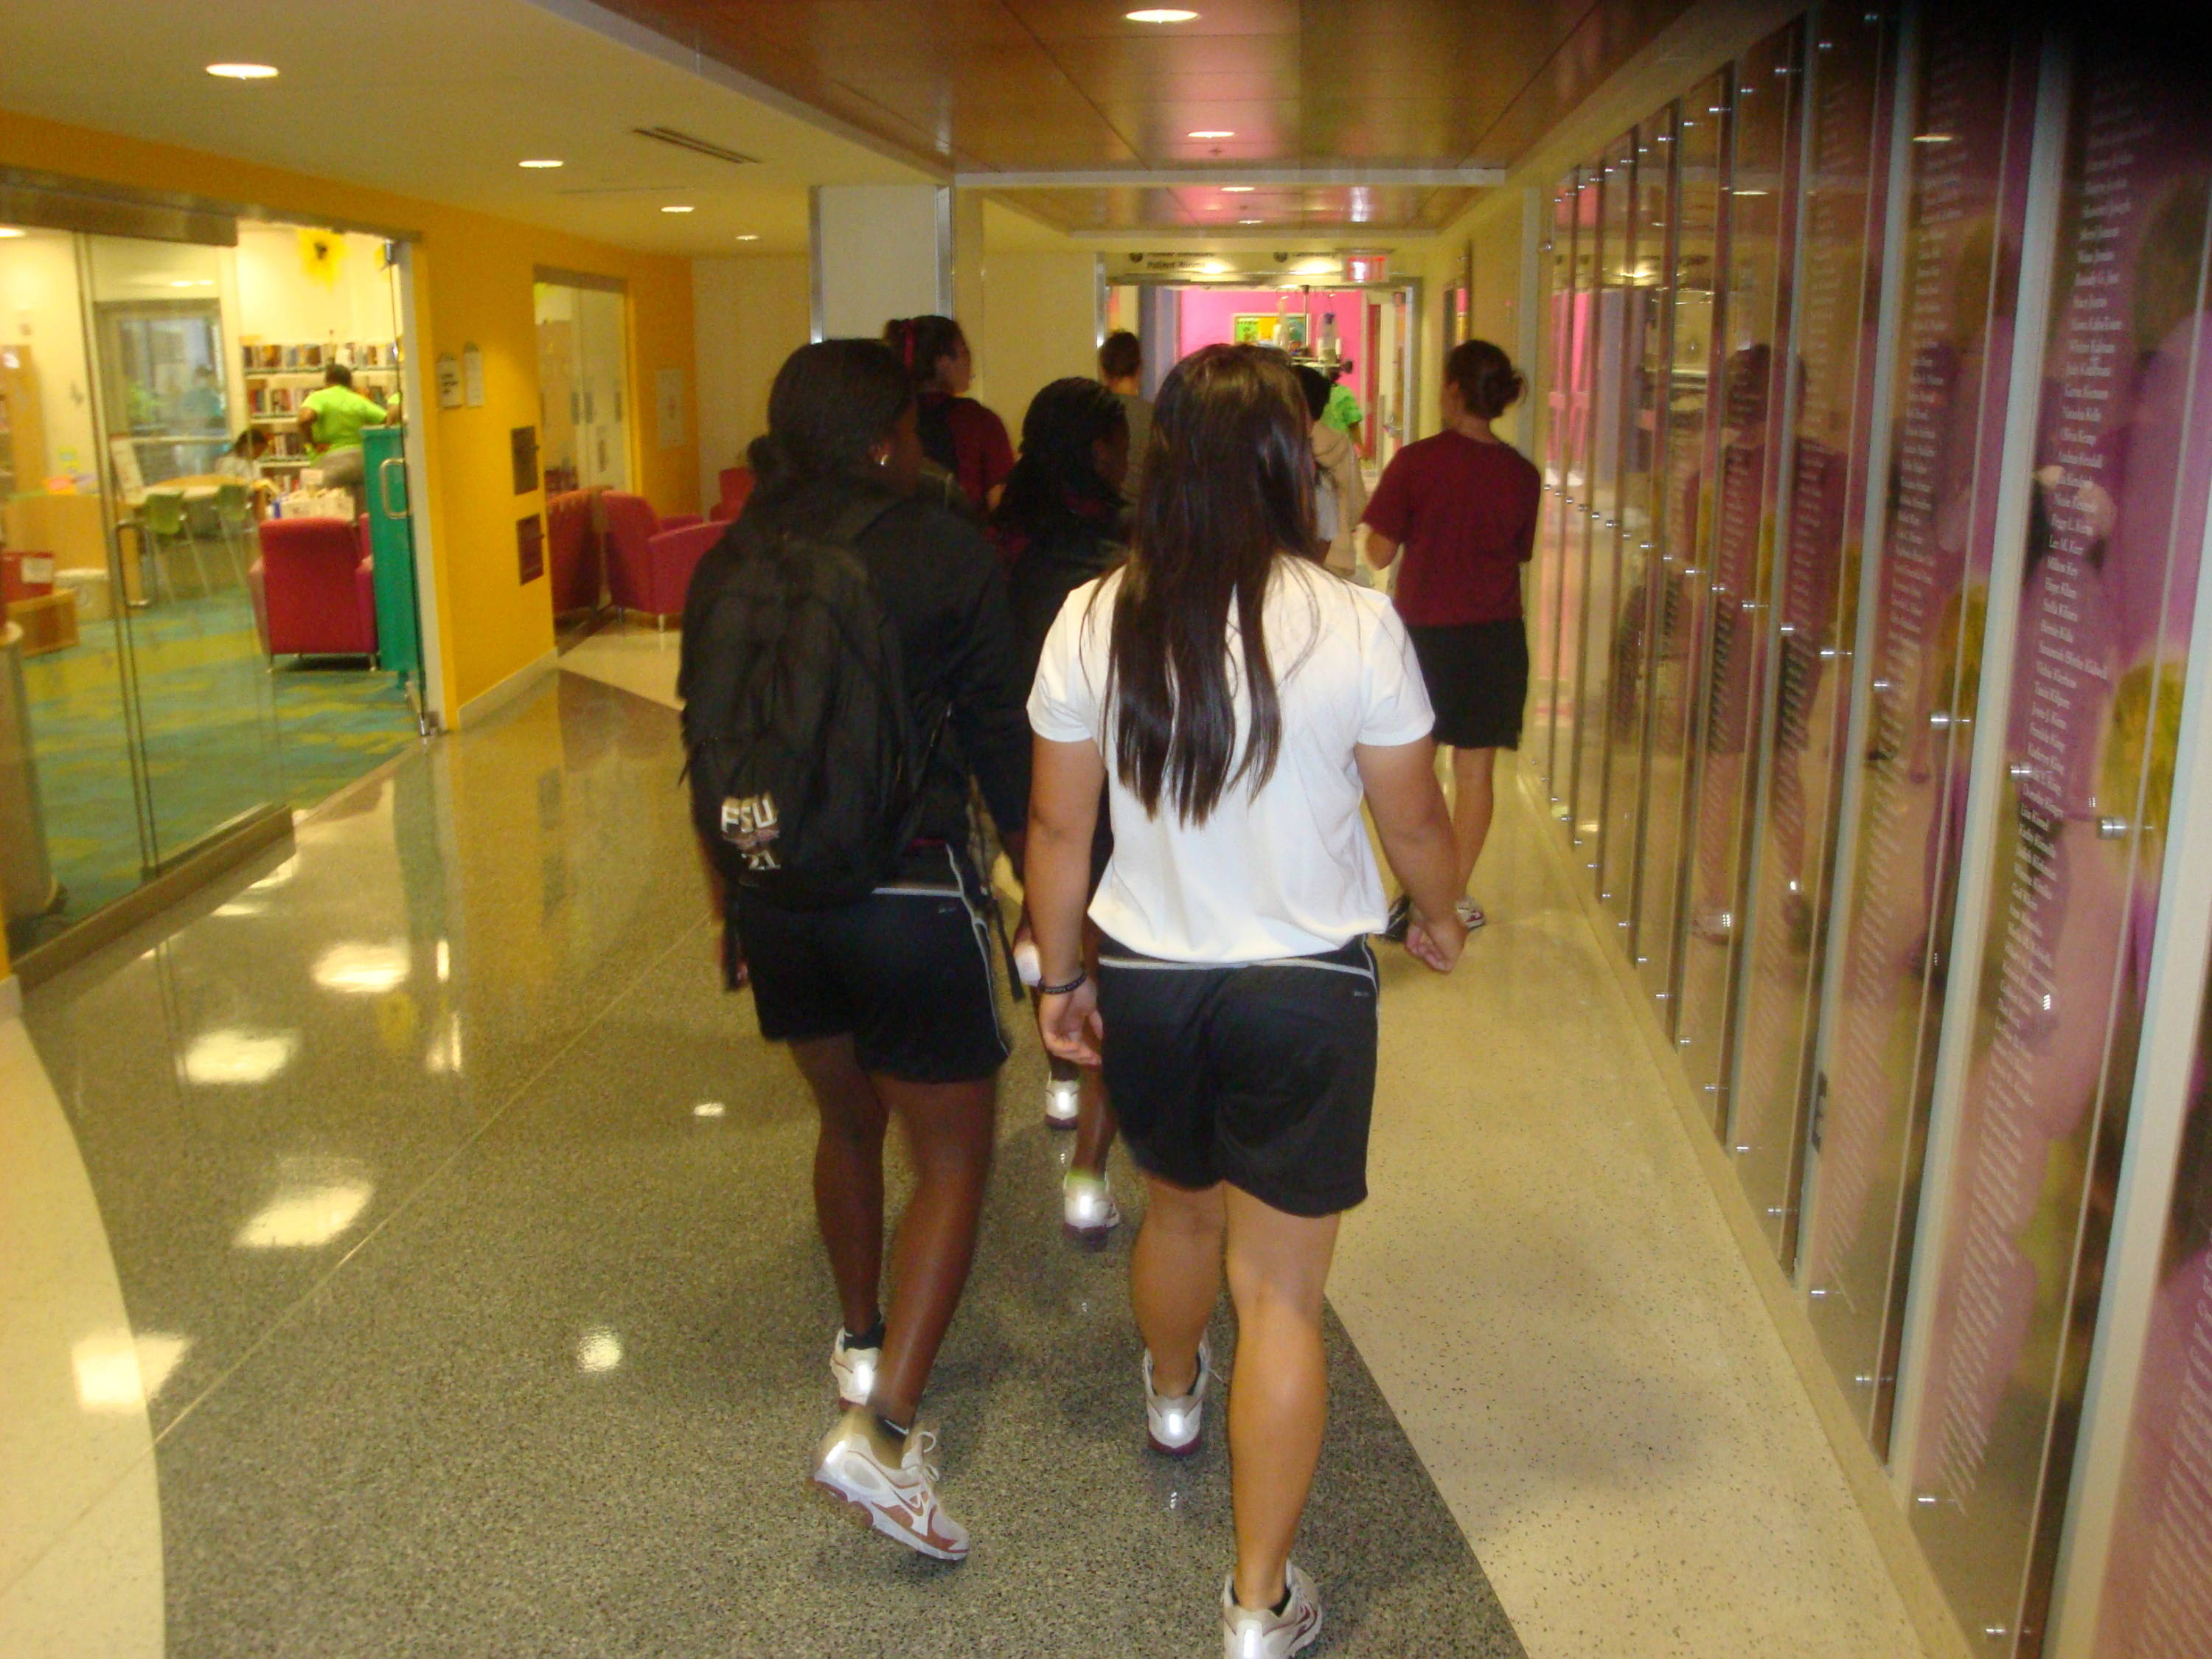 The players continue to look around the Children's Healthcare of Atlanta at Scottish Rite - which was a beautiful center!